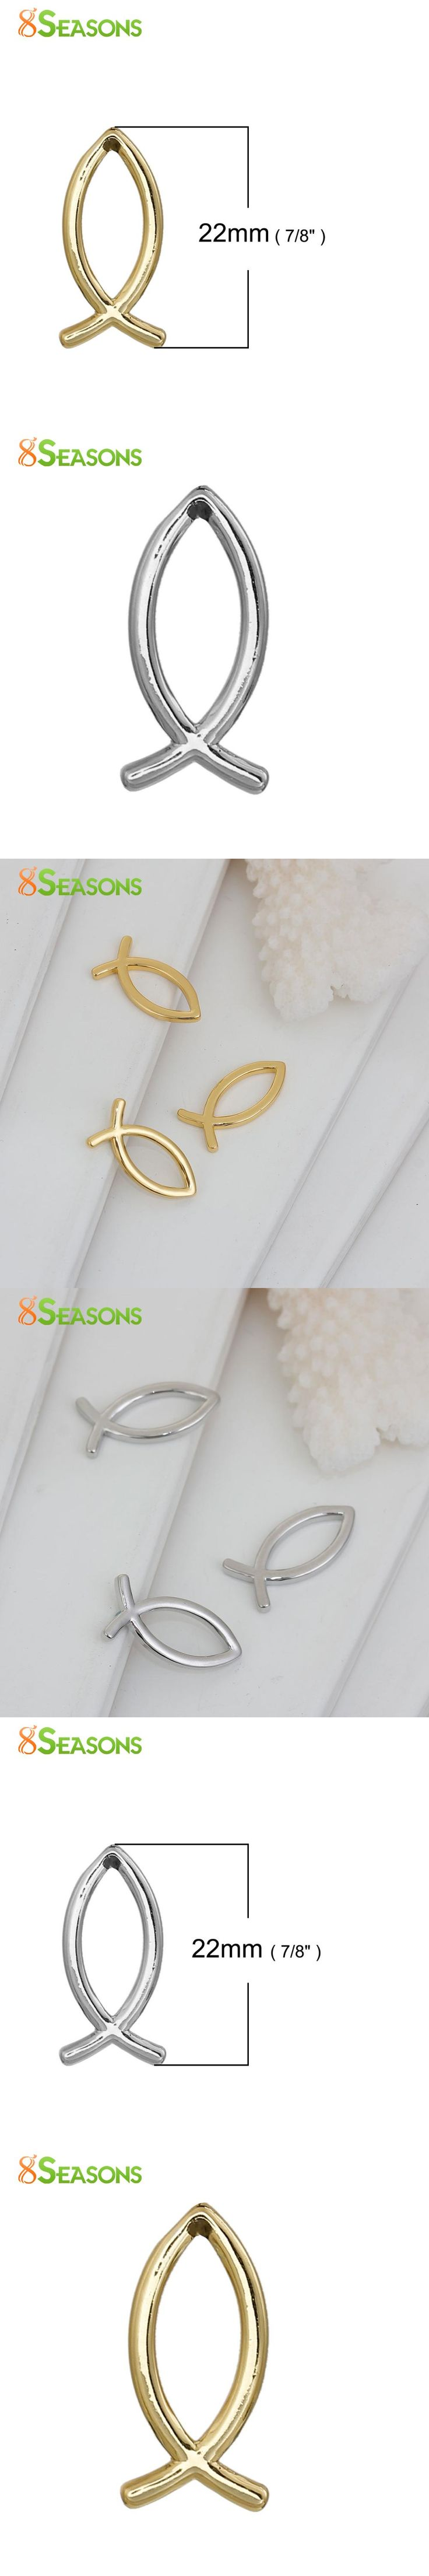 "8SEASONS Copper Charms Jesus/ Christian Fish Ichthys Silver Tone Color Gold color Hollow 22mm( 7/8"") x 11mm( 3/8""), 2 PCs"